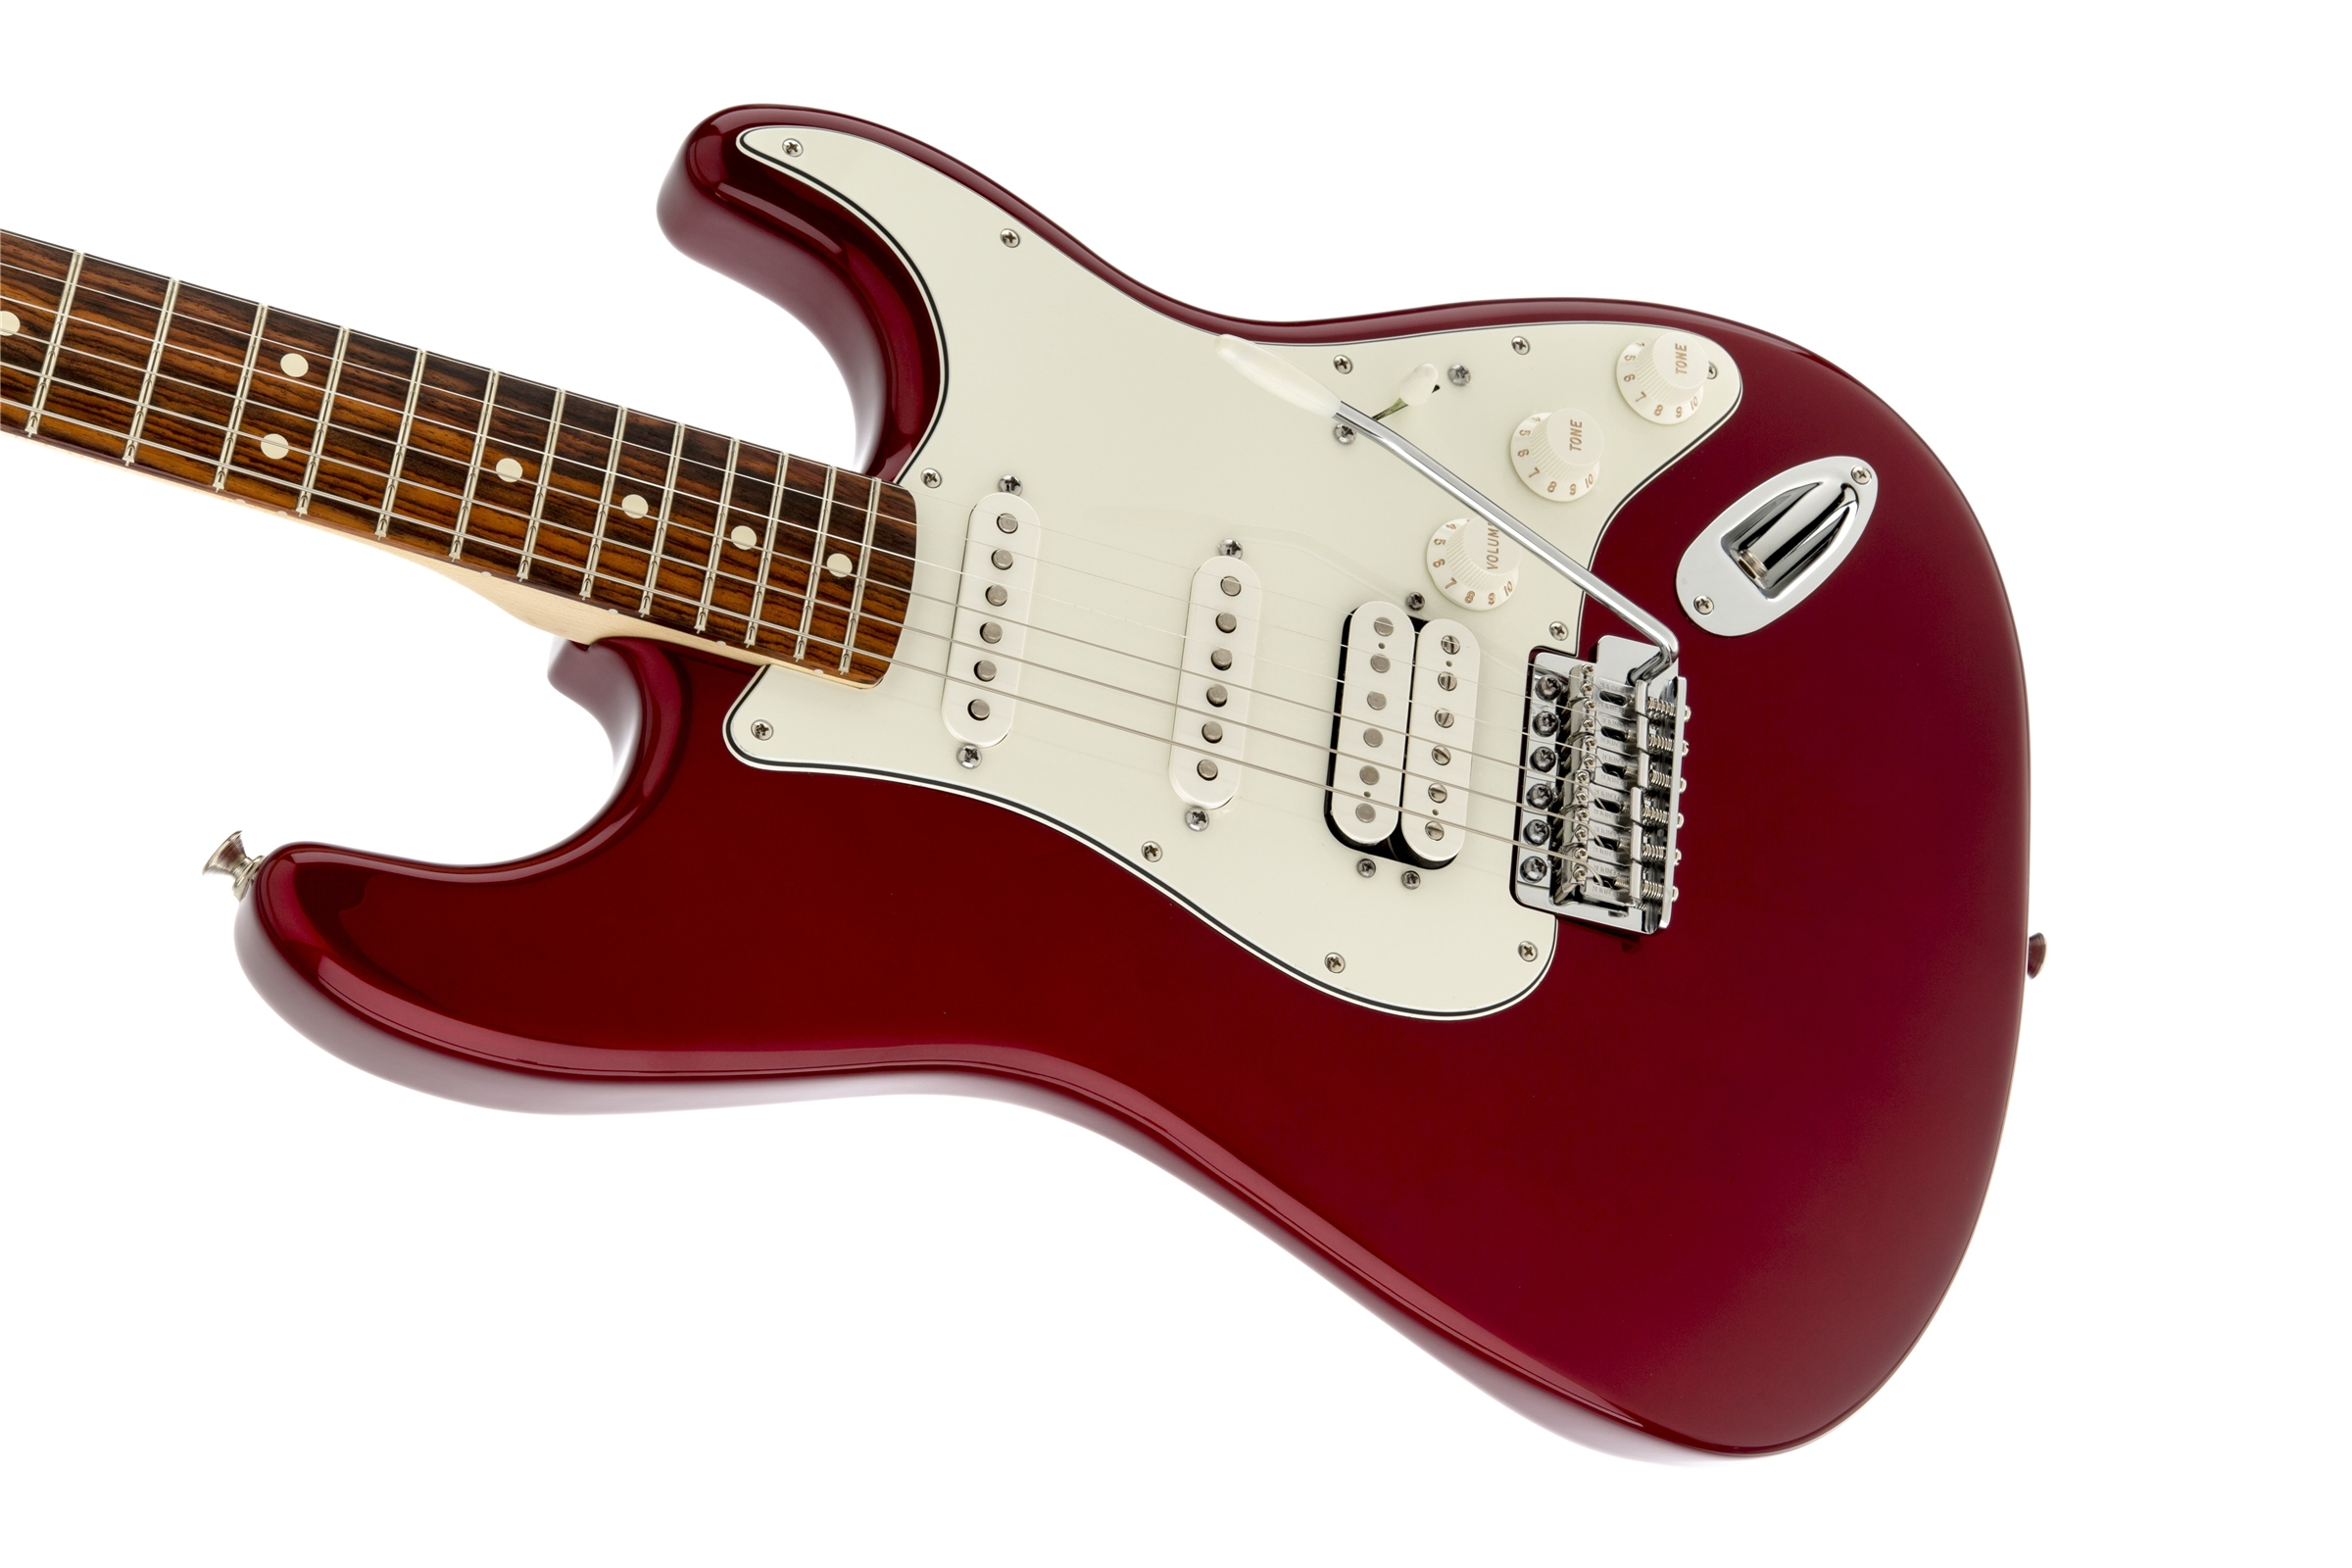 Fender Standard Stratocaster® HSS Candy Apple Red Rosewood Fingerboard Electric Guitar